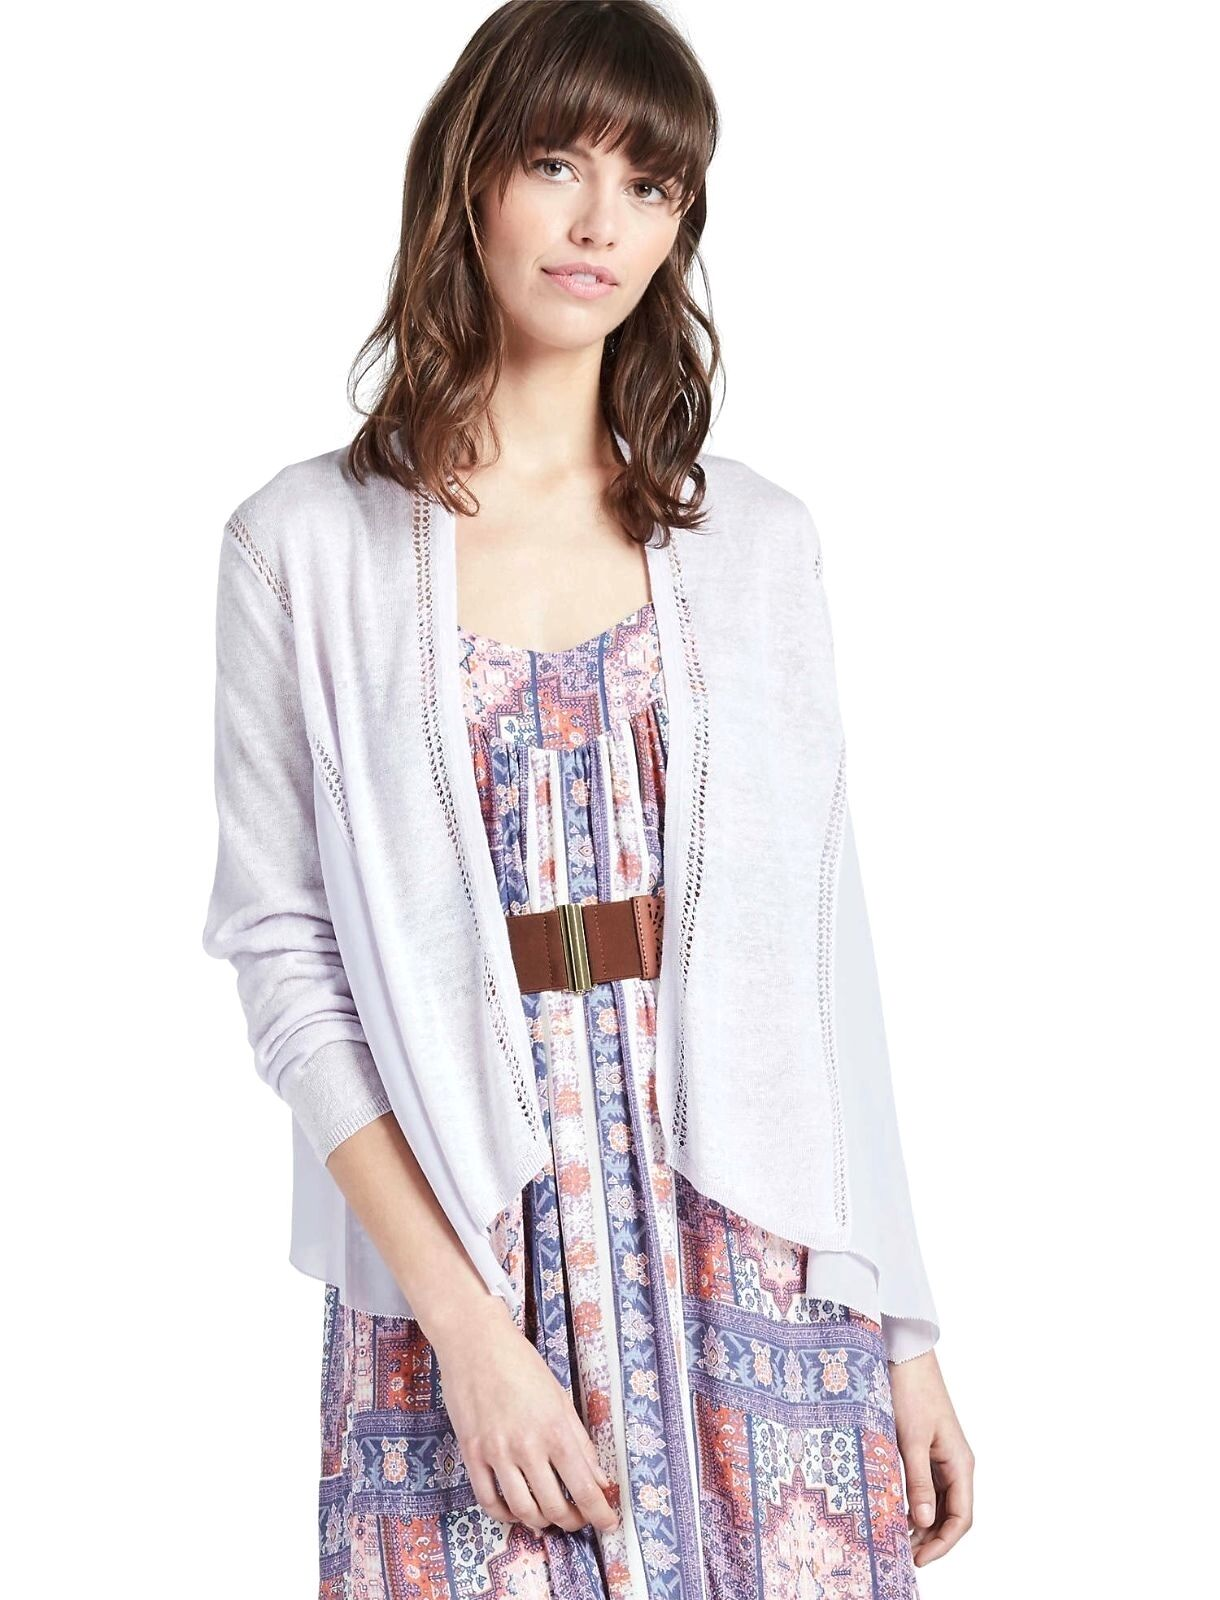 Lucky Brand - M Nwt - violets Mixte Mousseline & Tricot voituredigan Ouvert Pull